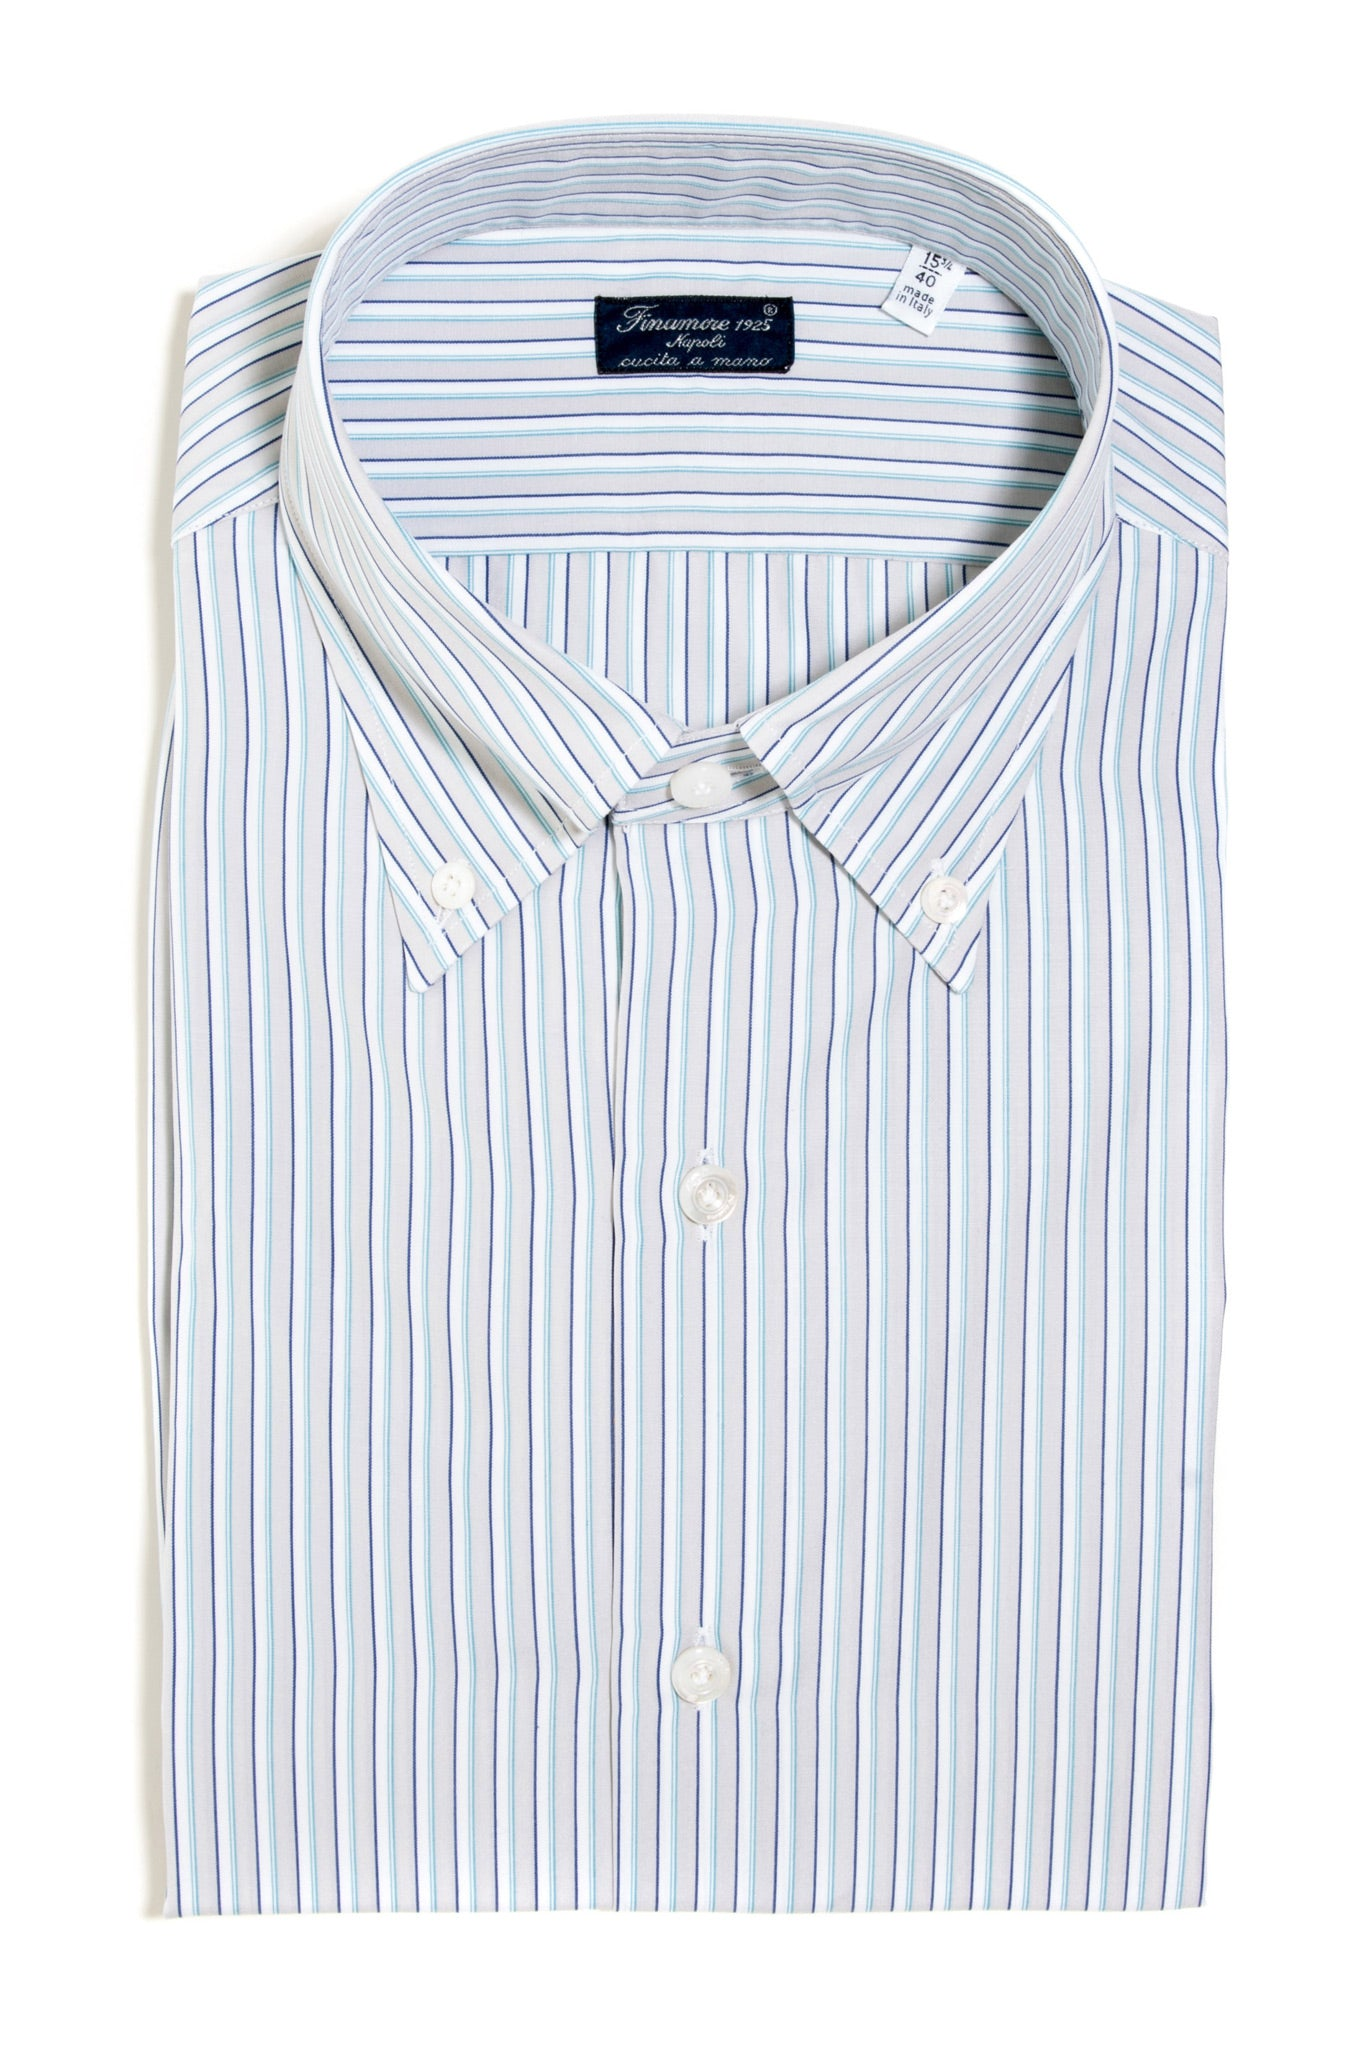 Finamore Morante Poplin Dress Shirt (147447283736)